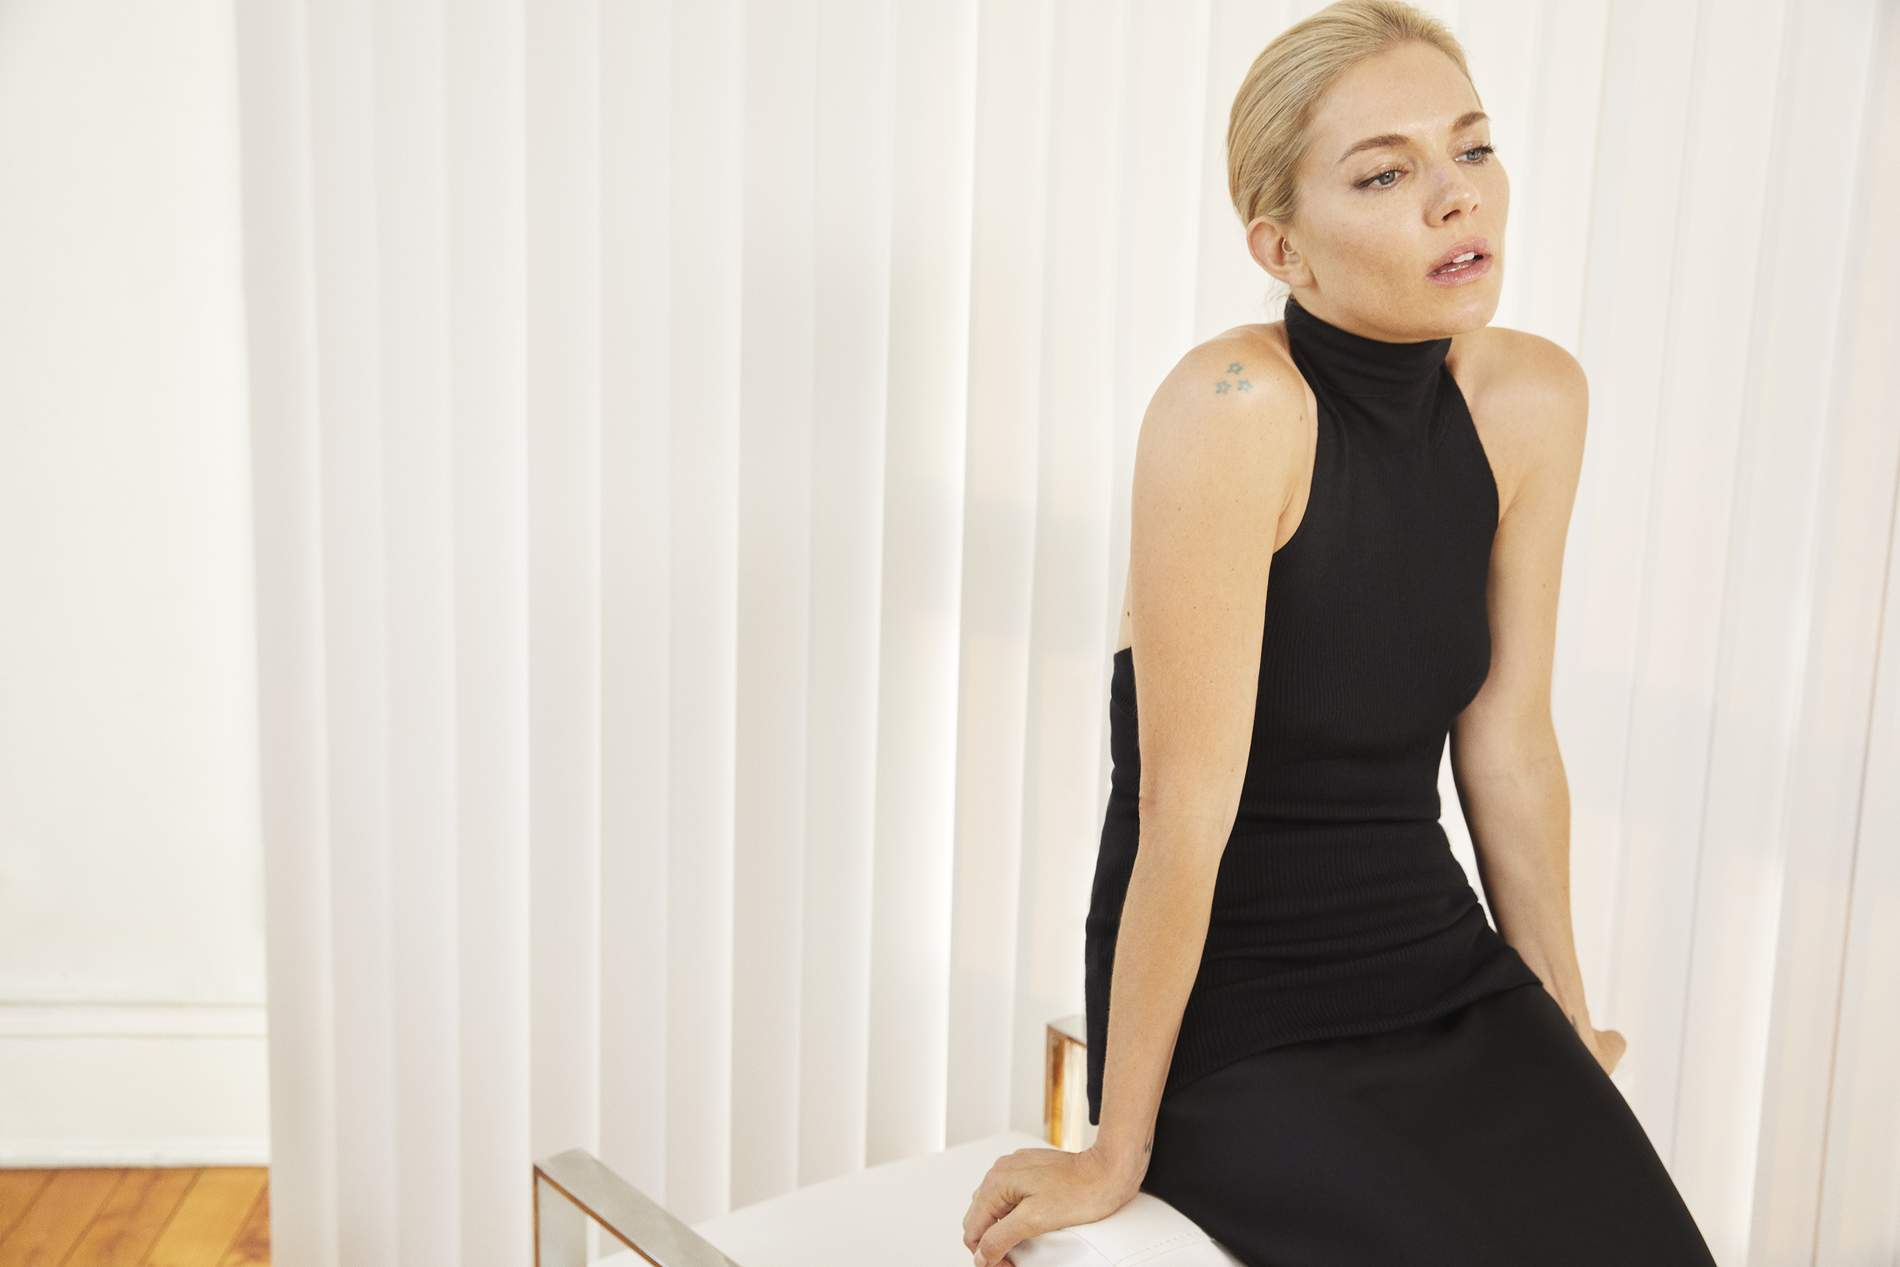 Sienna Miller On Why She's Having The Time Of Her Life | PORTER